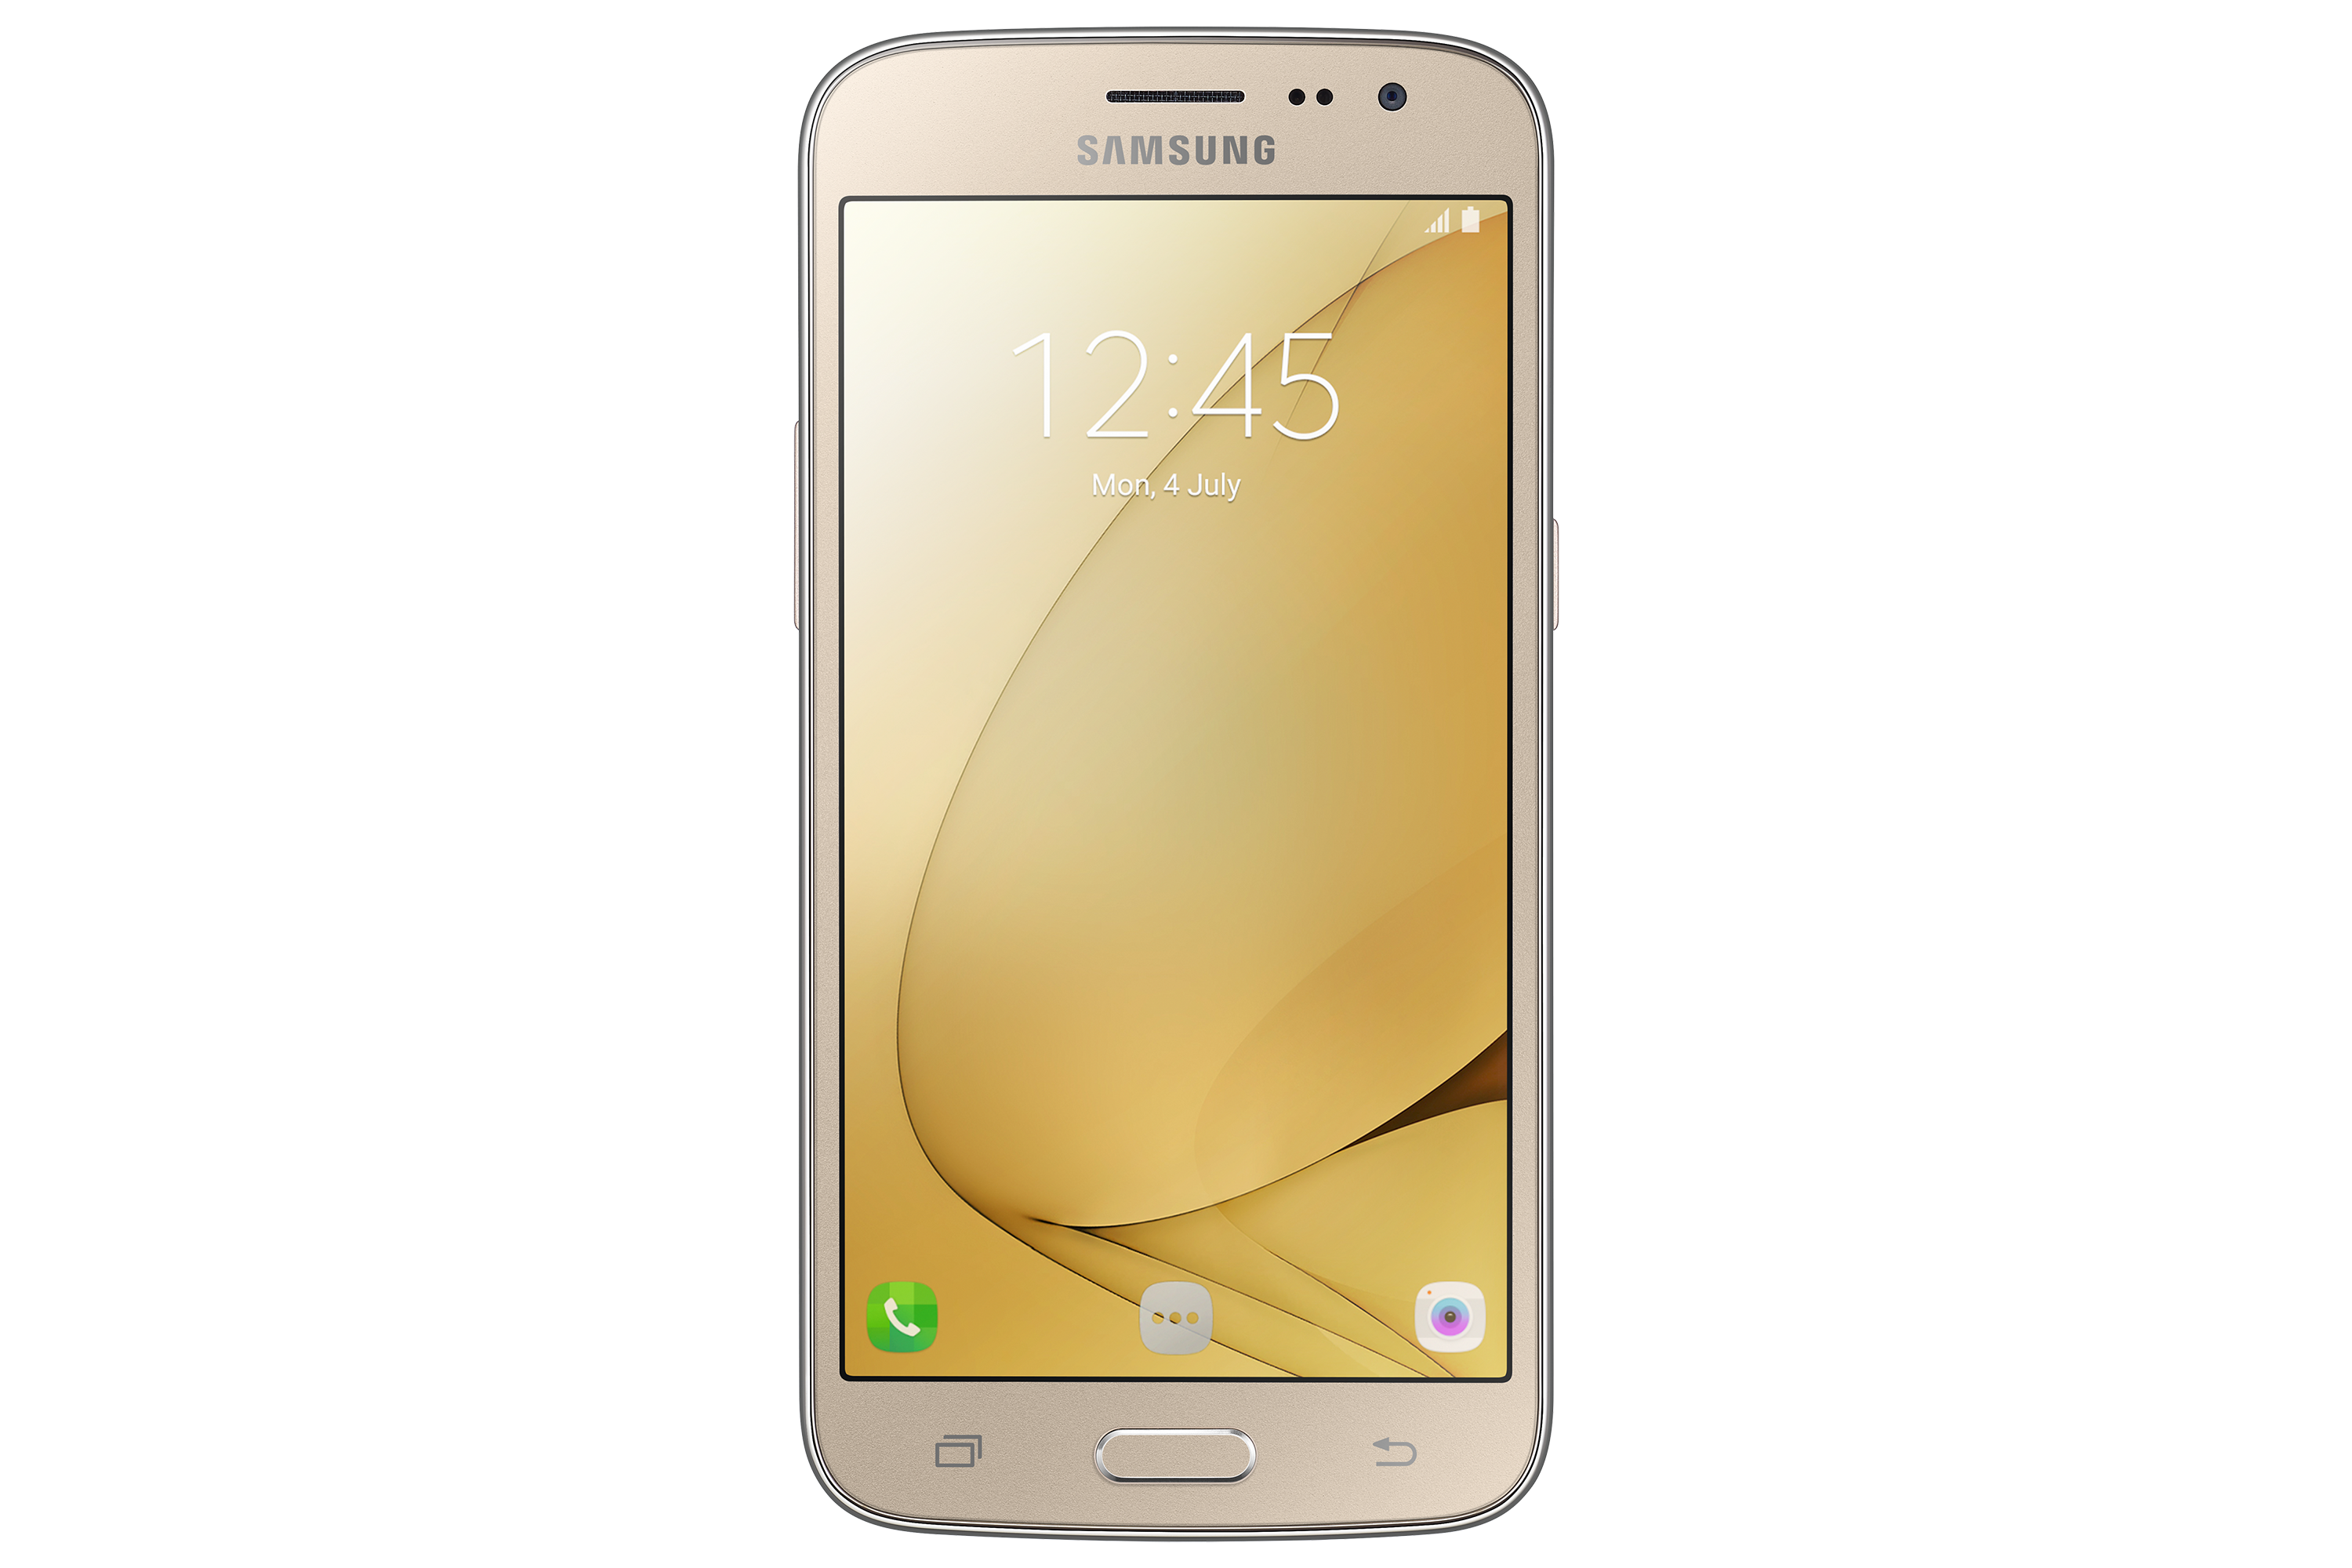 Samsung Galaxy J2 2016 Launched With Industry First Turbo Speed Technology And Smart Glow Versatile Large Screen Galaxy J Max Also Introduced Samsung Newsroom India